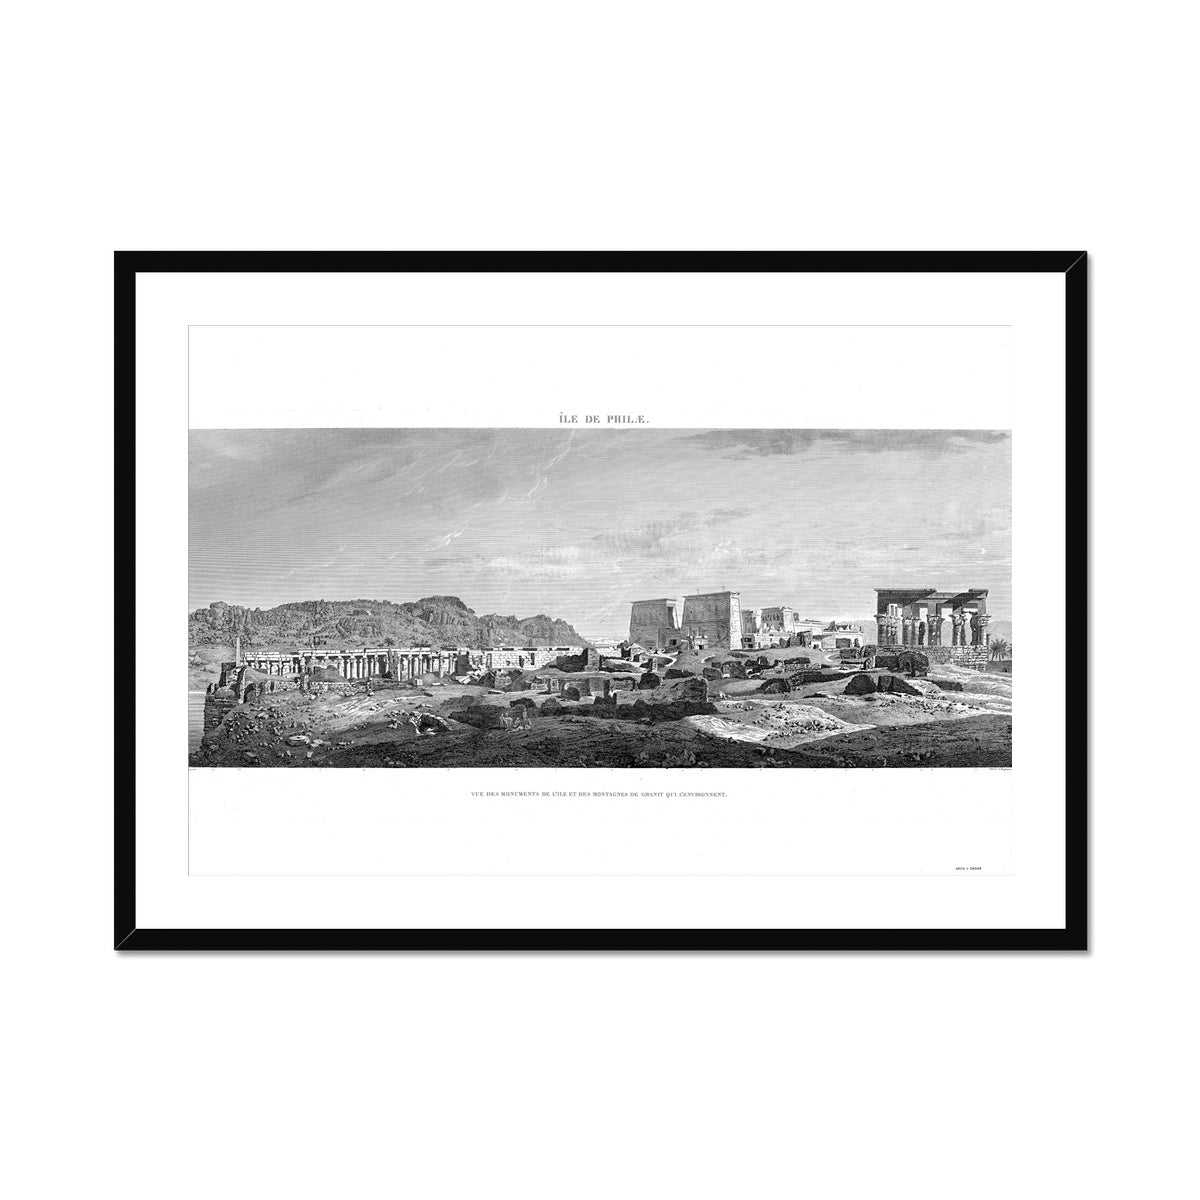 Temple of Isis Profile View - Philae Egypt -  Framed & Mounted Print